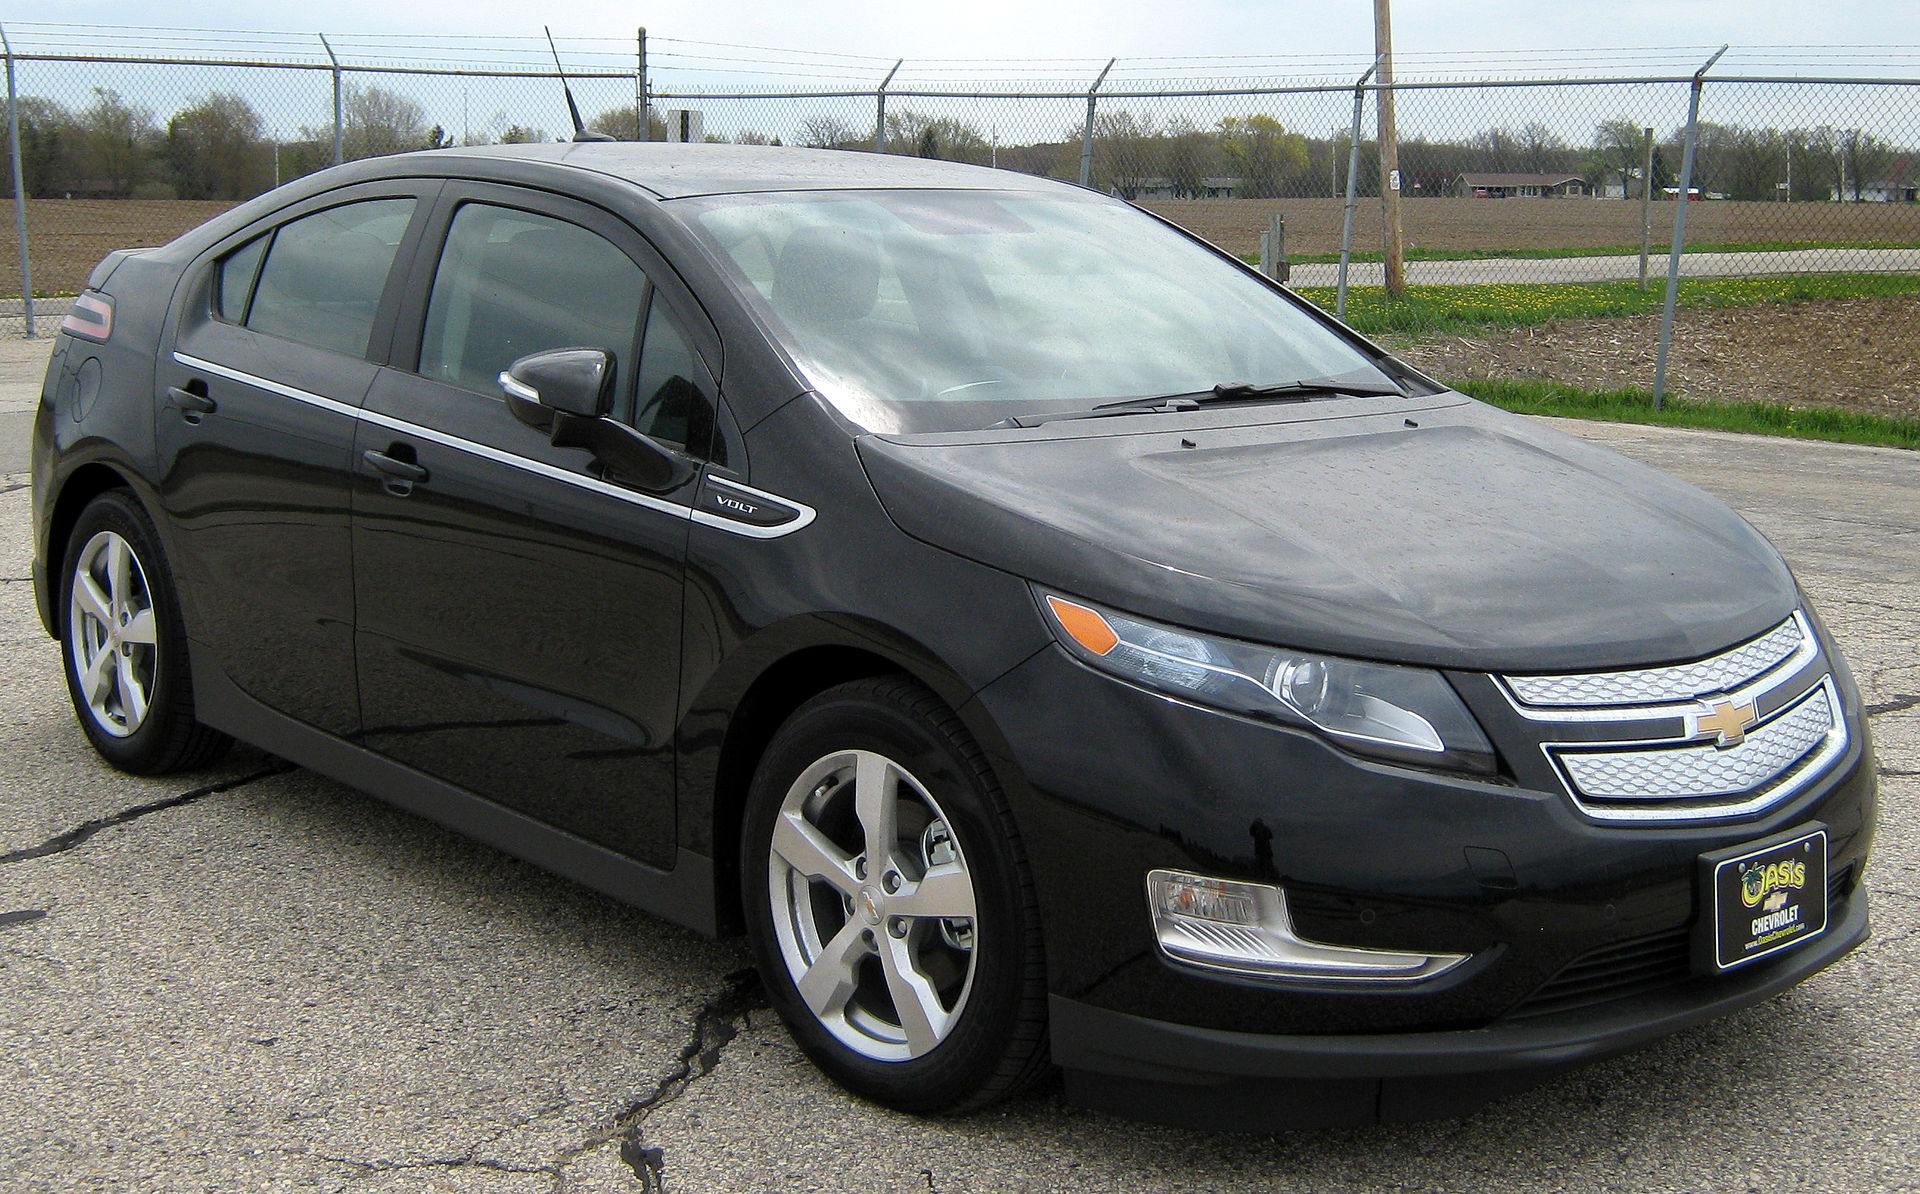 Chevrolet Volt – Wikipedia